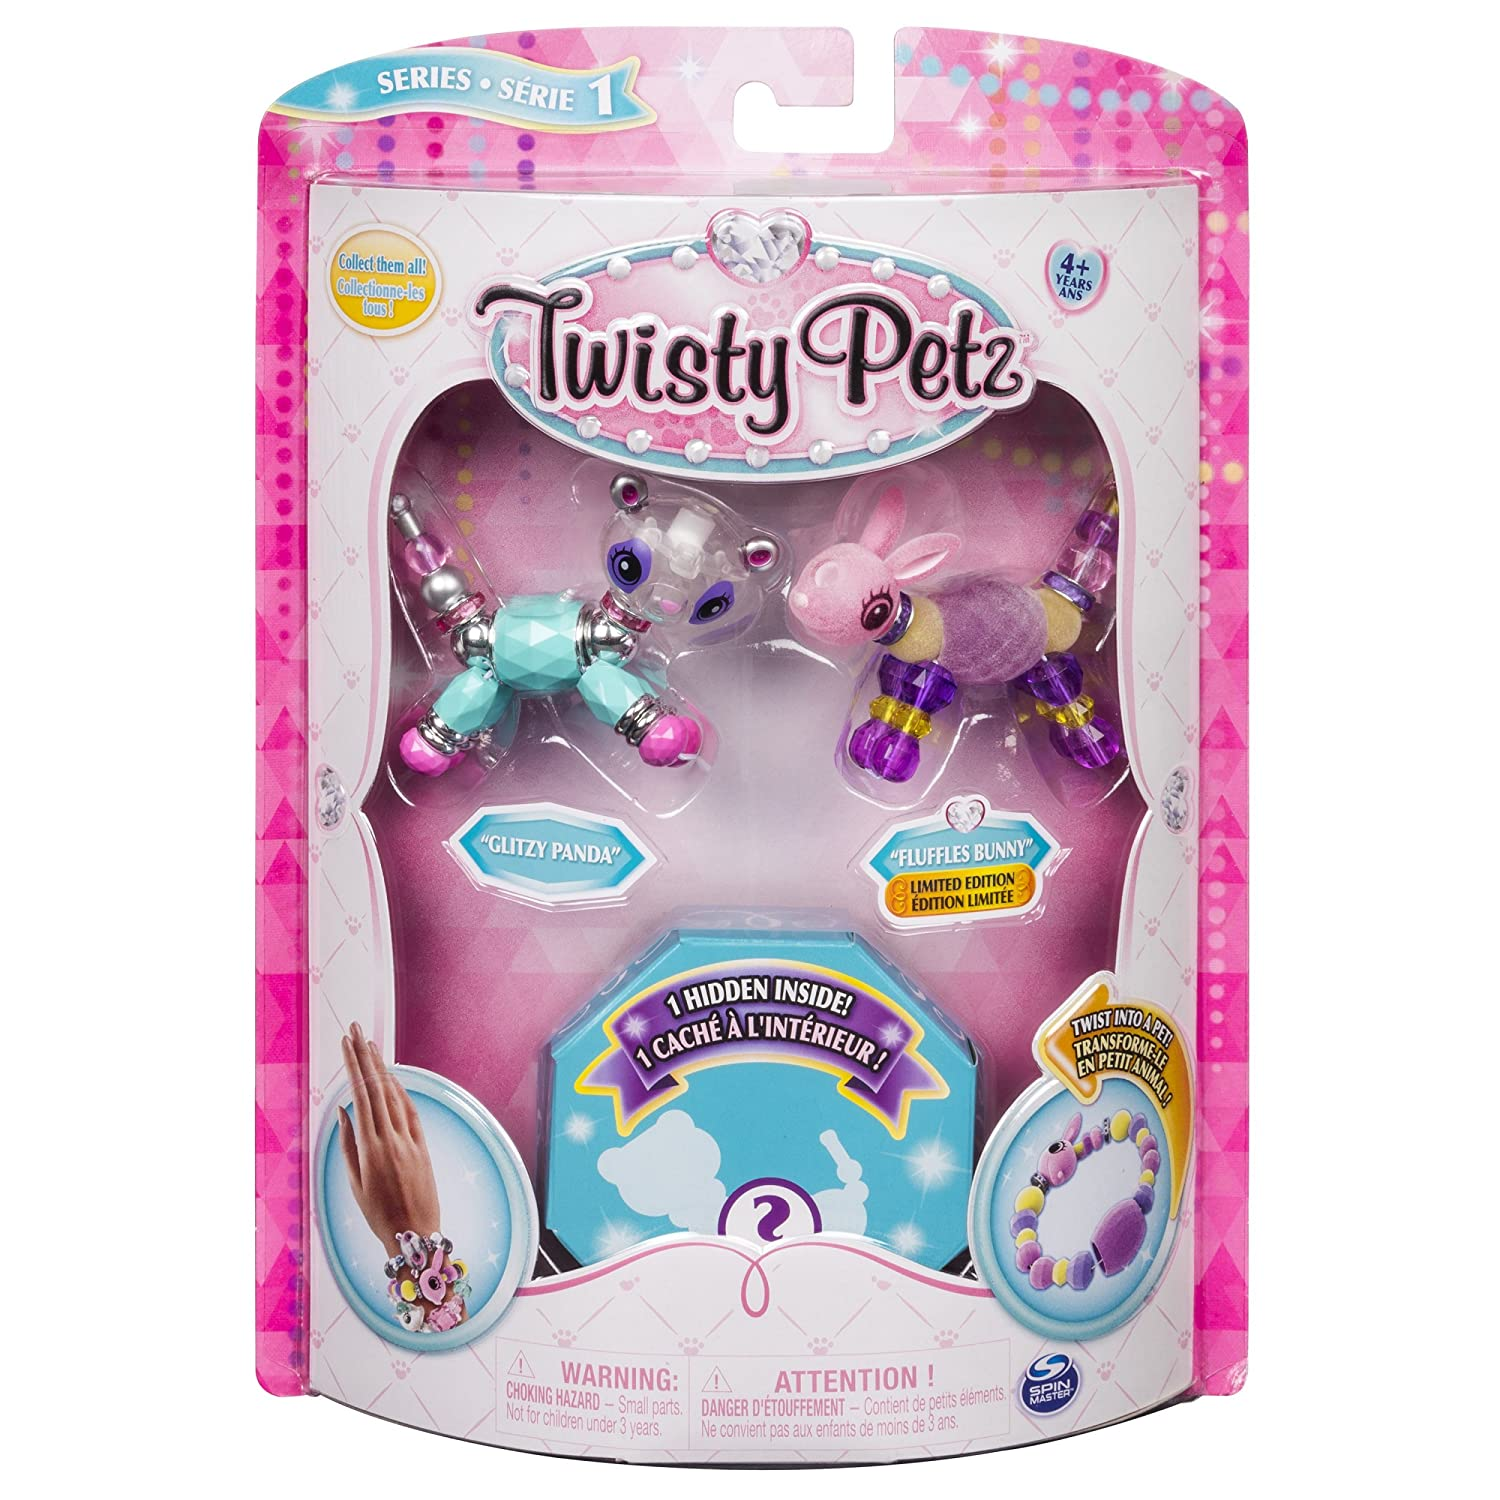 Twisty Petz – 3-Pack - Glitzy Panda, Fluffles Bunny and Surprise Collectible Bracelet Set for Kids Spin Master Ltd 20100955